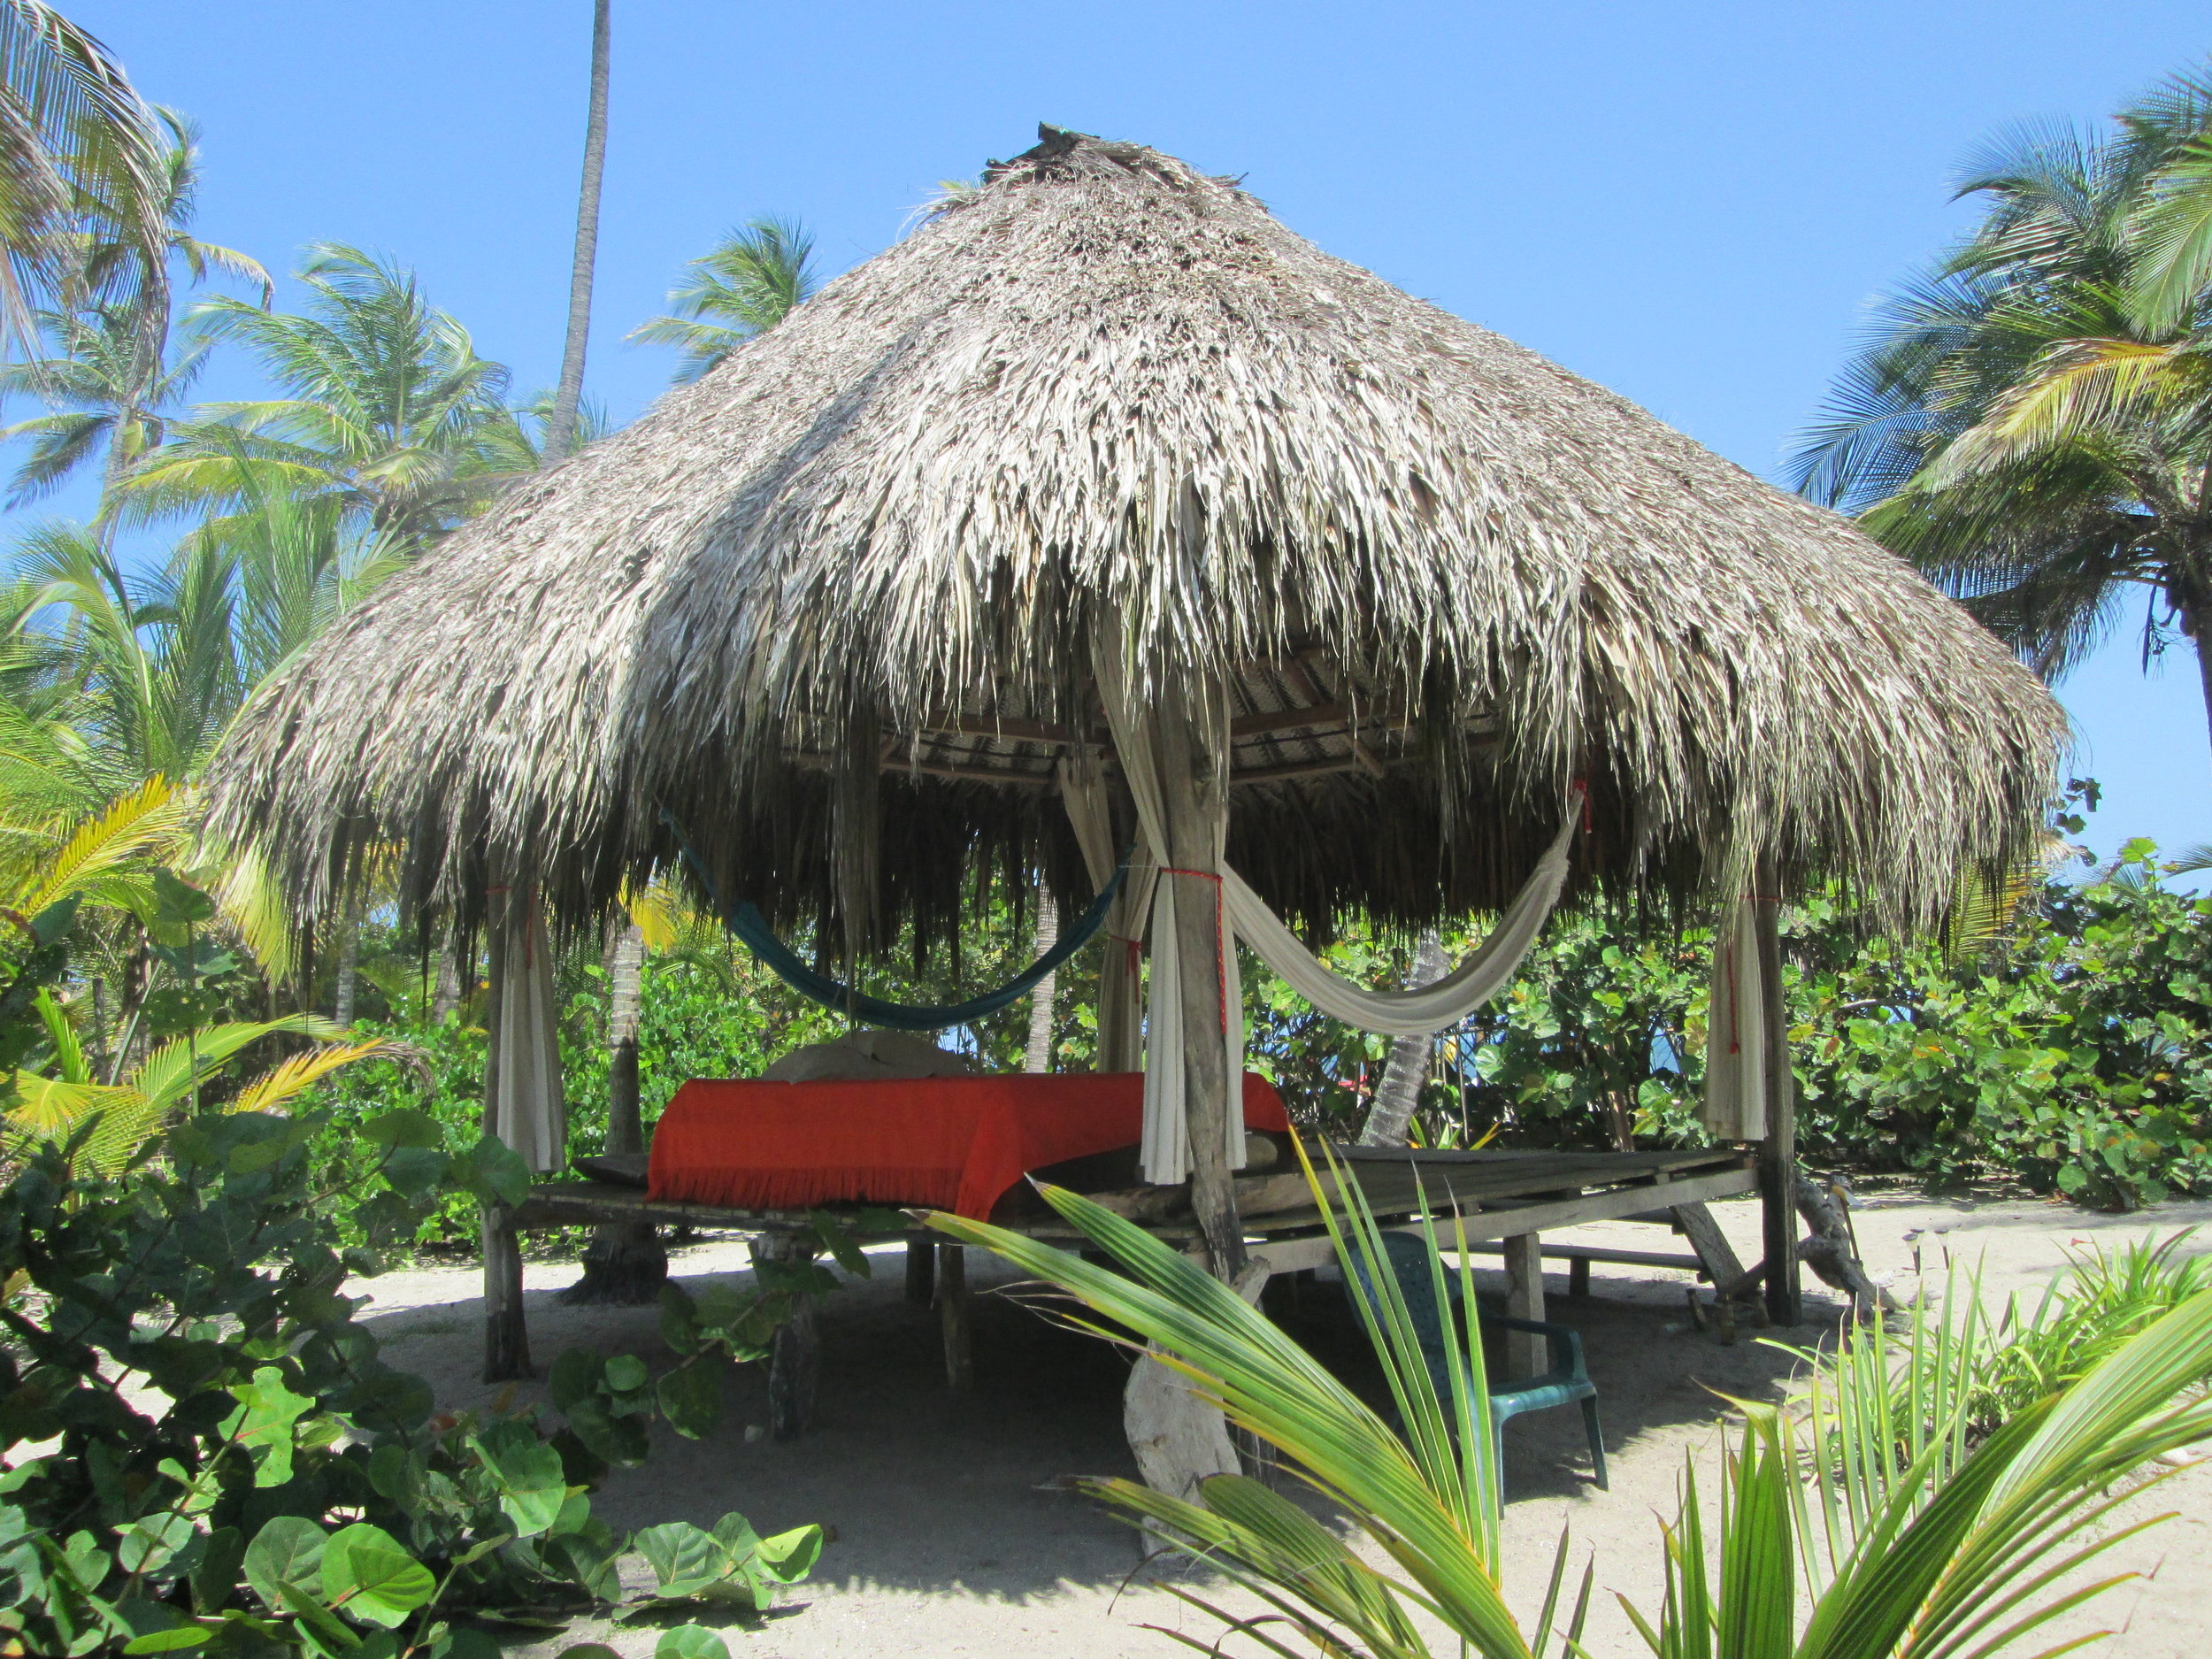 A relaxation hut at the Playa Pikua Lodge in Tayrona.